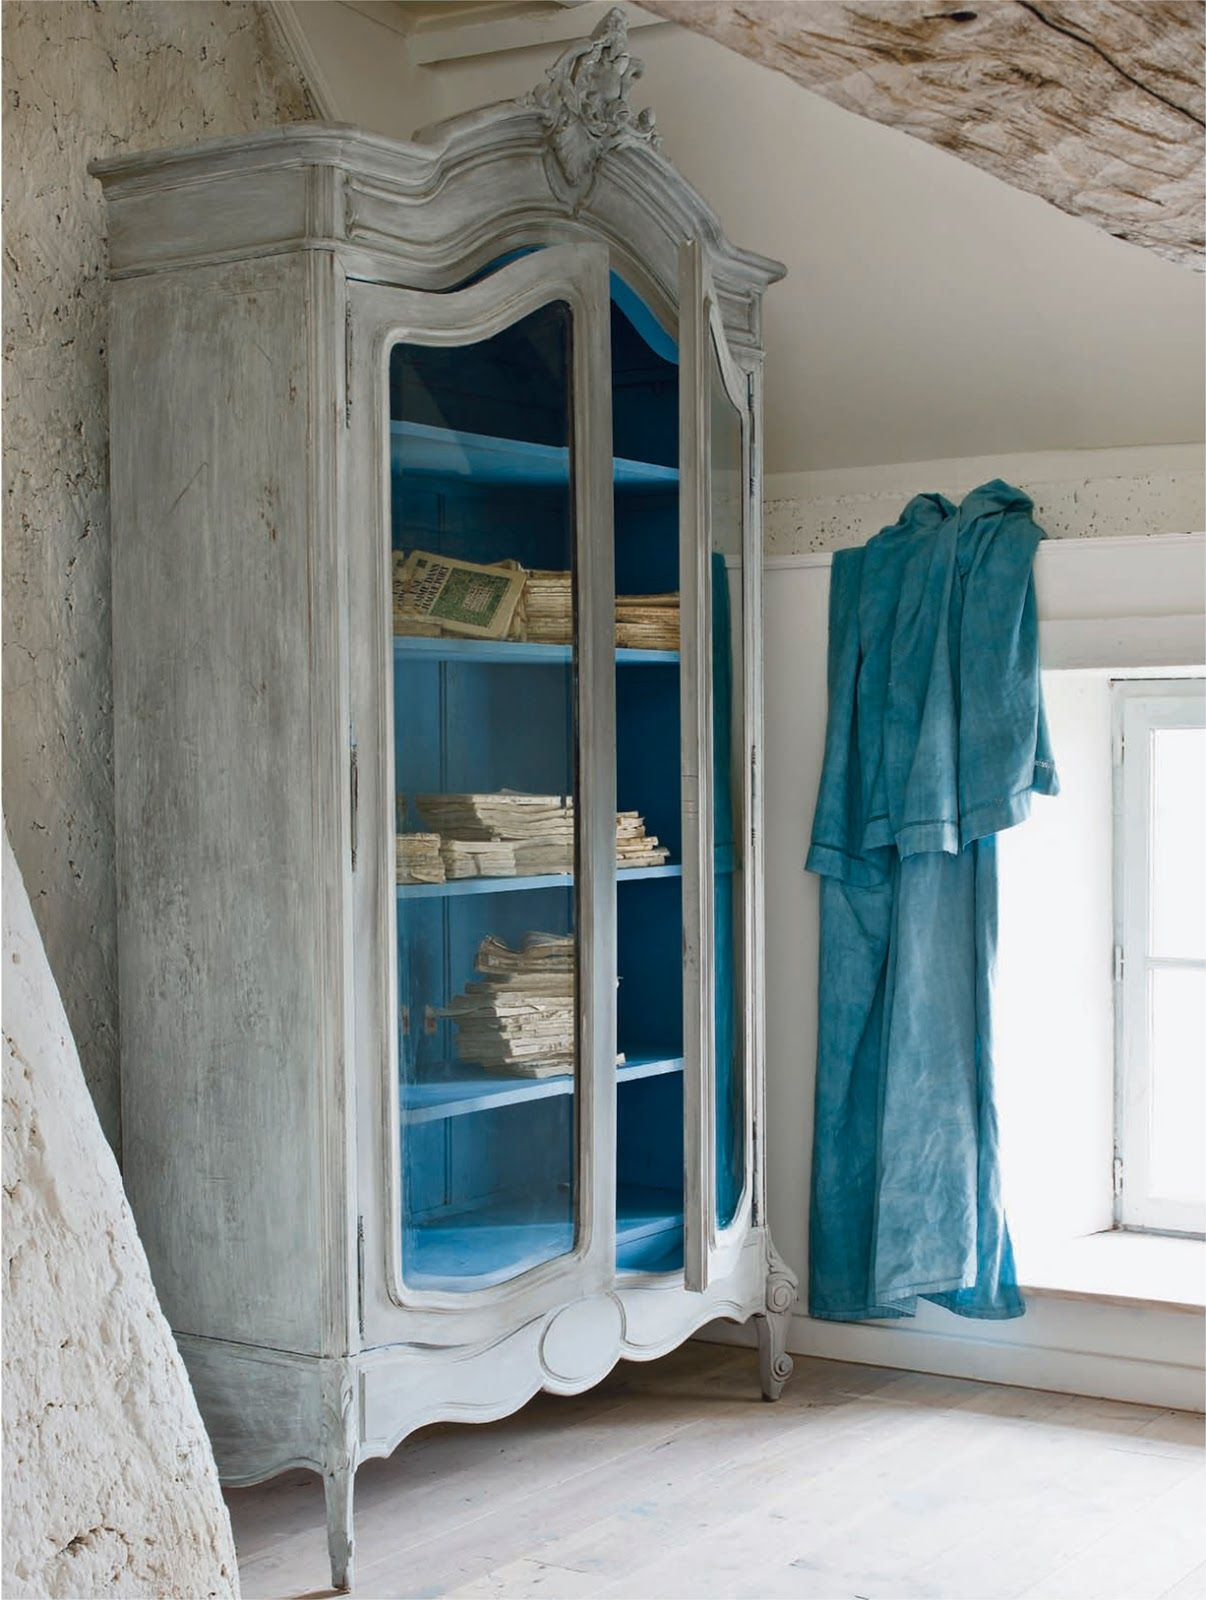 Attrayant Distressed Armoire Coloring Washing With Wet Wax: French Linen, Old White,  And Paris Grey. Applying Wax To A Painted Wet Surface Achieves Beautiful  Effects ...